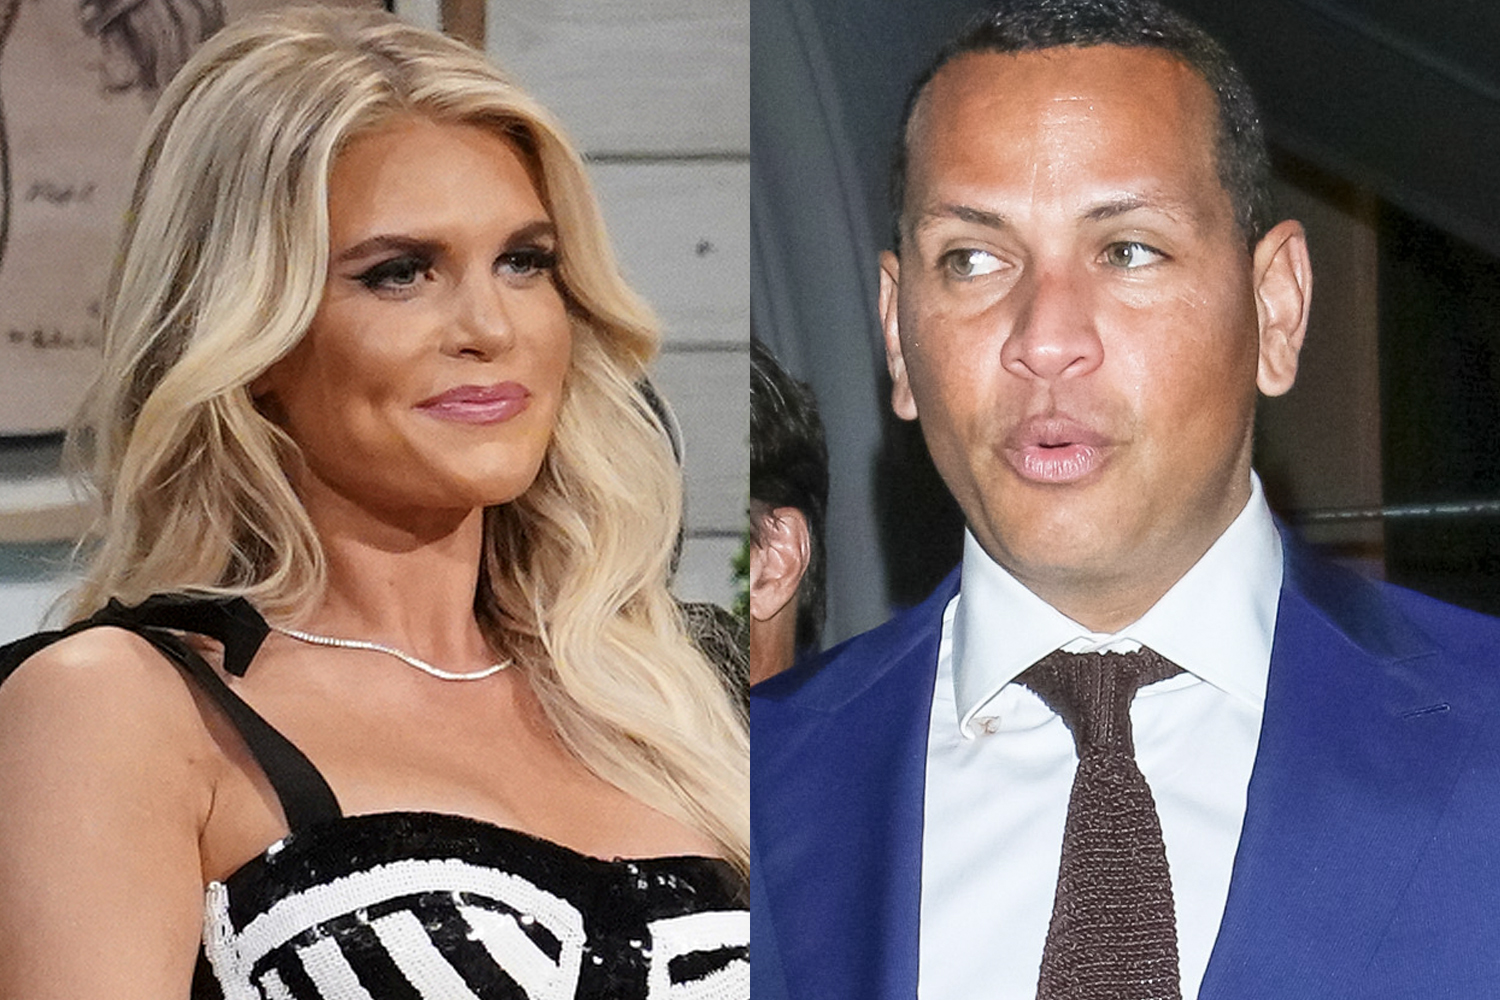 'Southern Charm' star Madison LeCroy and Alex Rodriguez